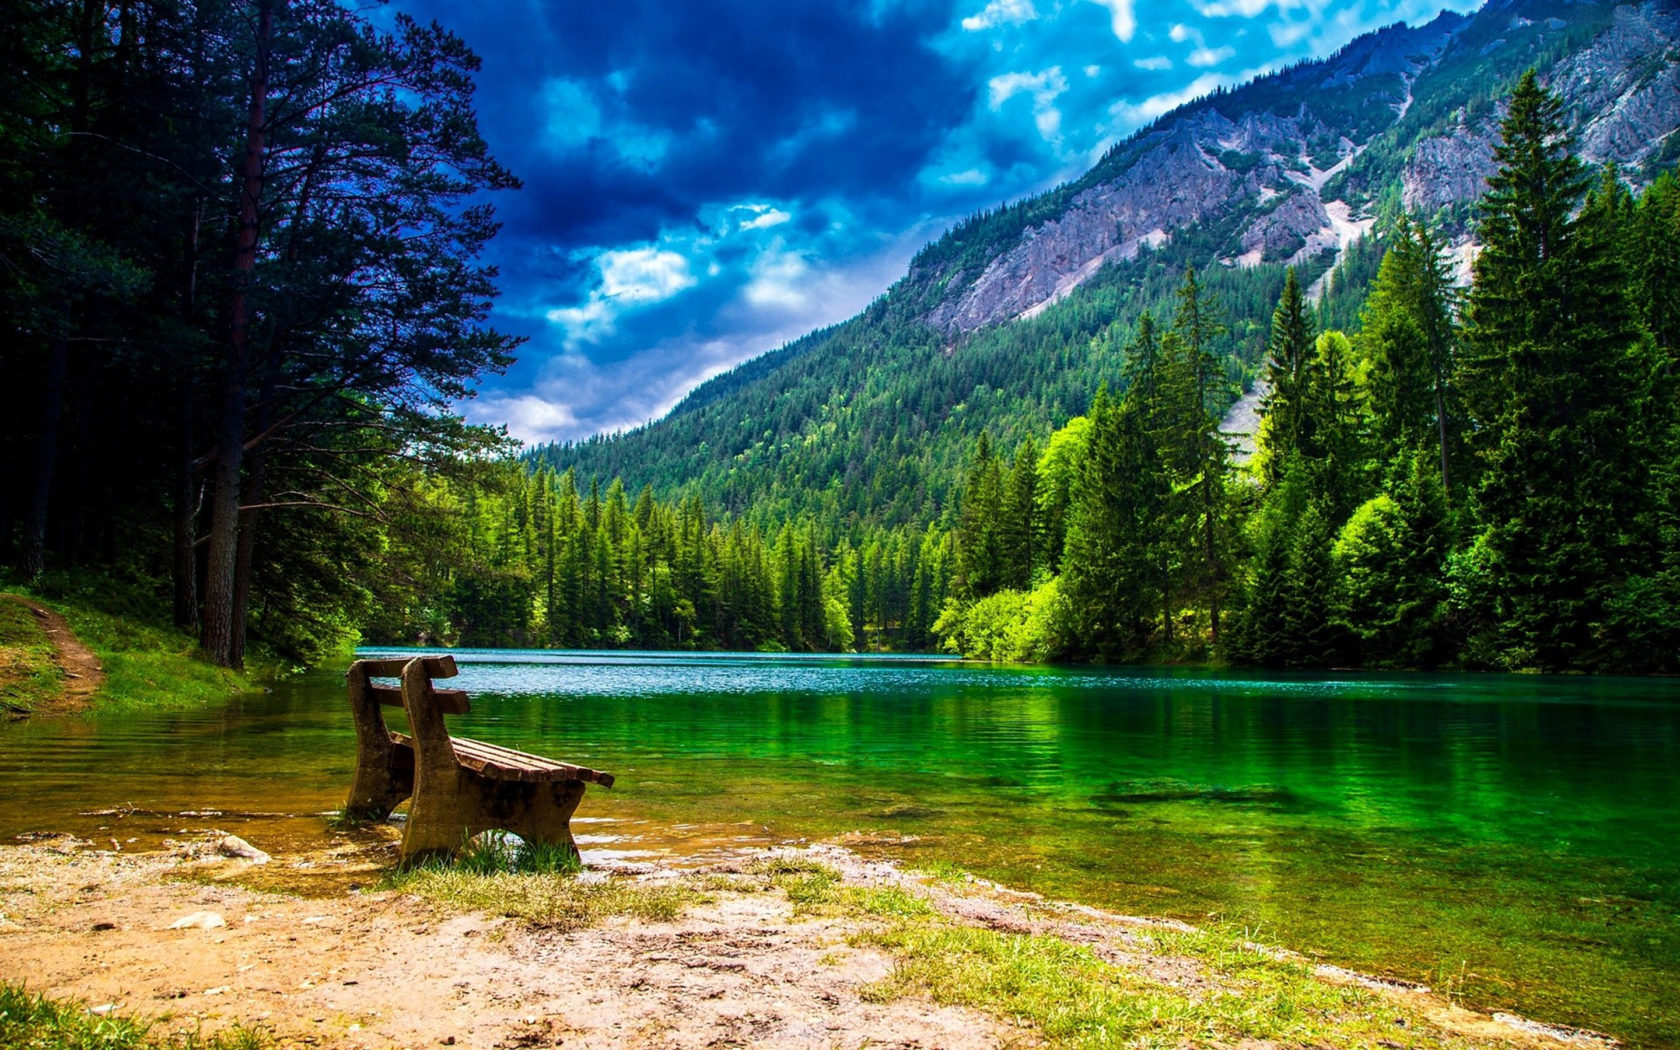 Lock Screen Wallpaper For Iphone 5 Wonderful Mountain Landscape With Green Pine Forest Green